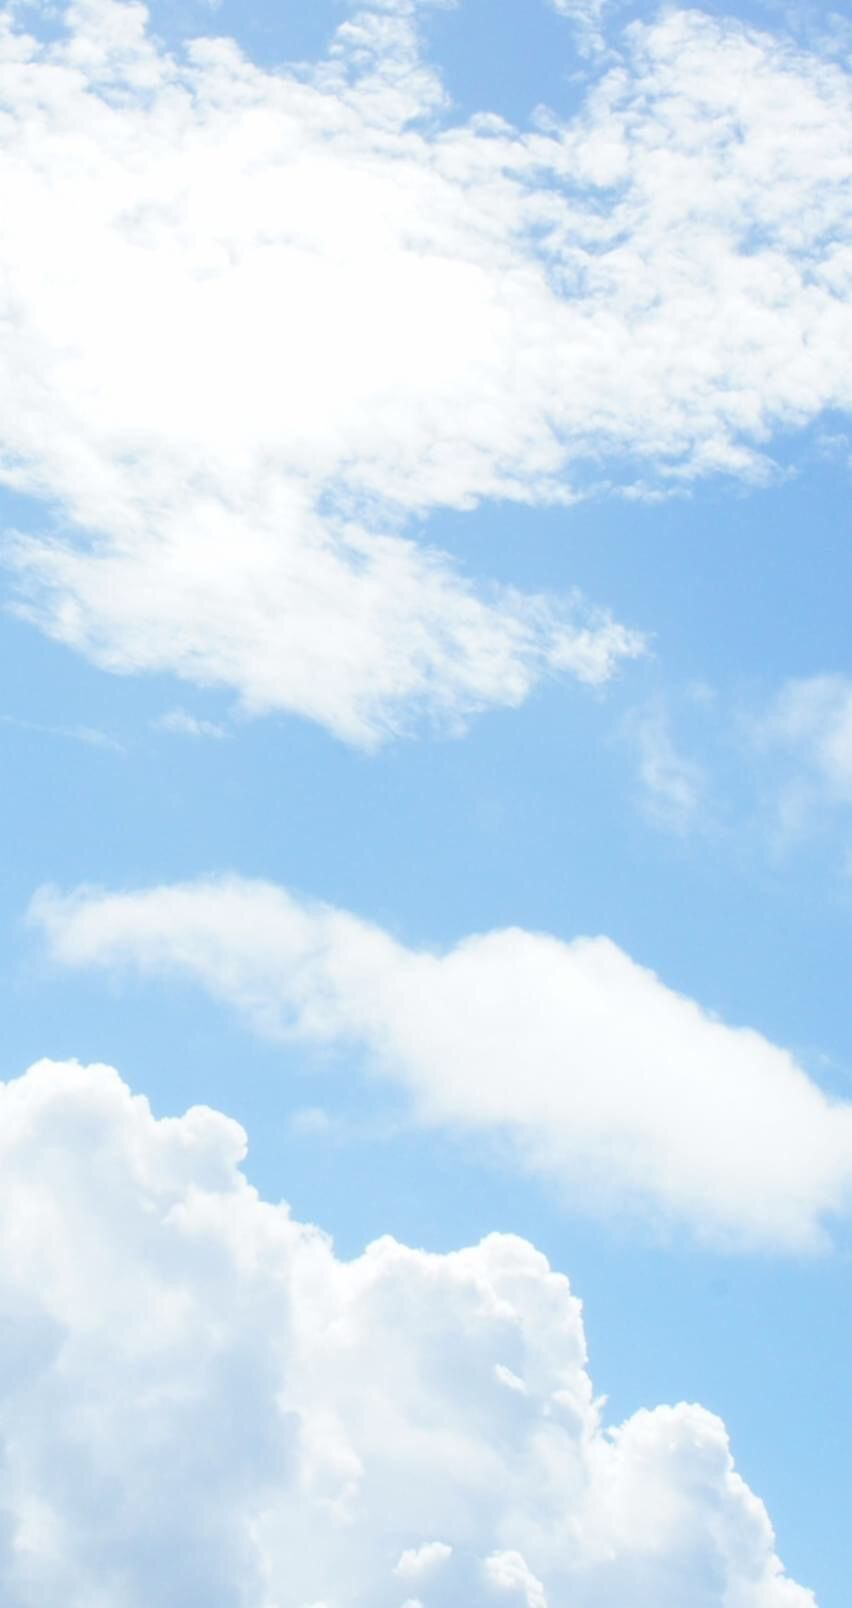 Pin By Zhang On Random Wallpapers Blue Sky Clouds Pastel Sky